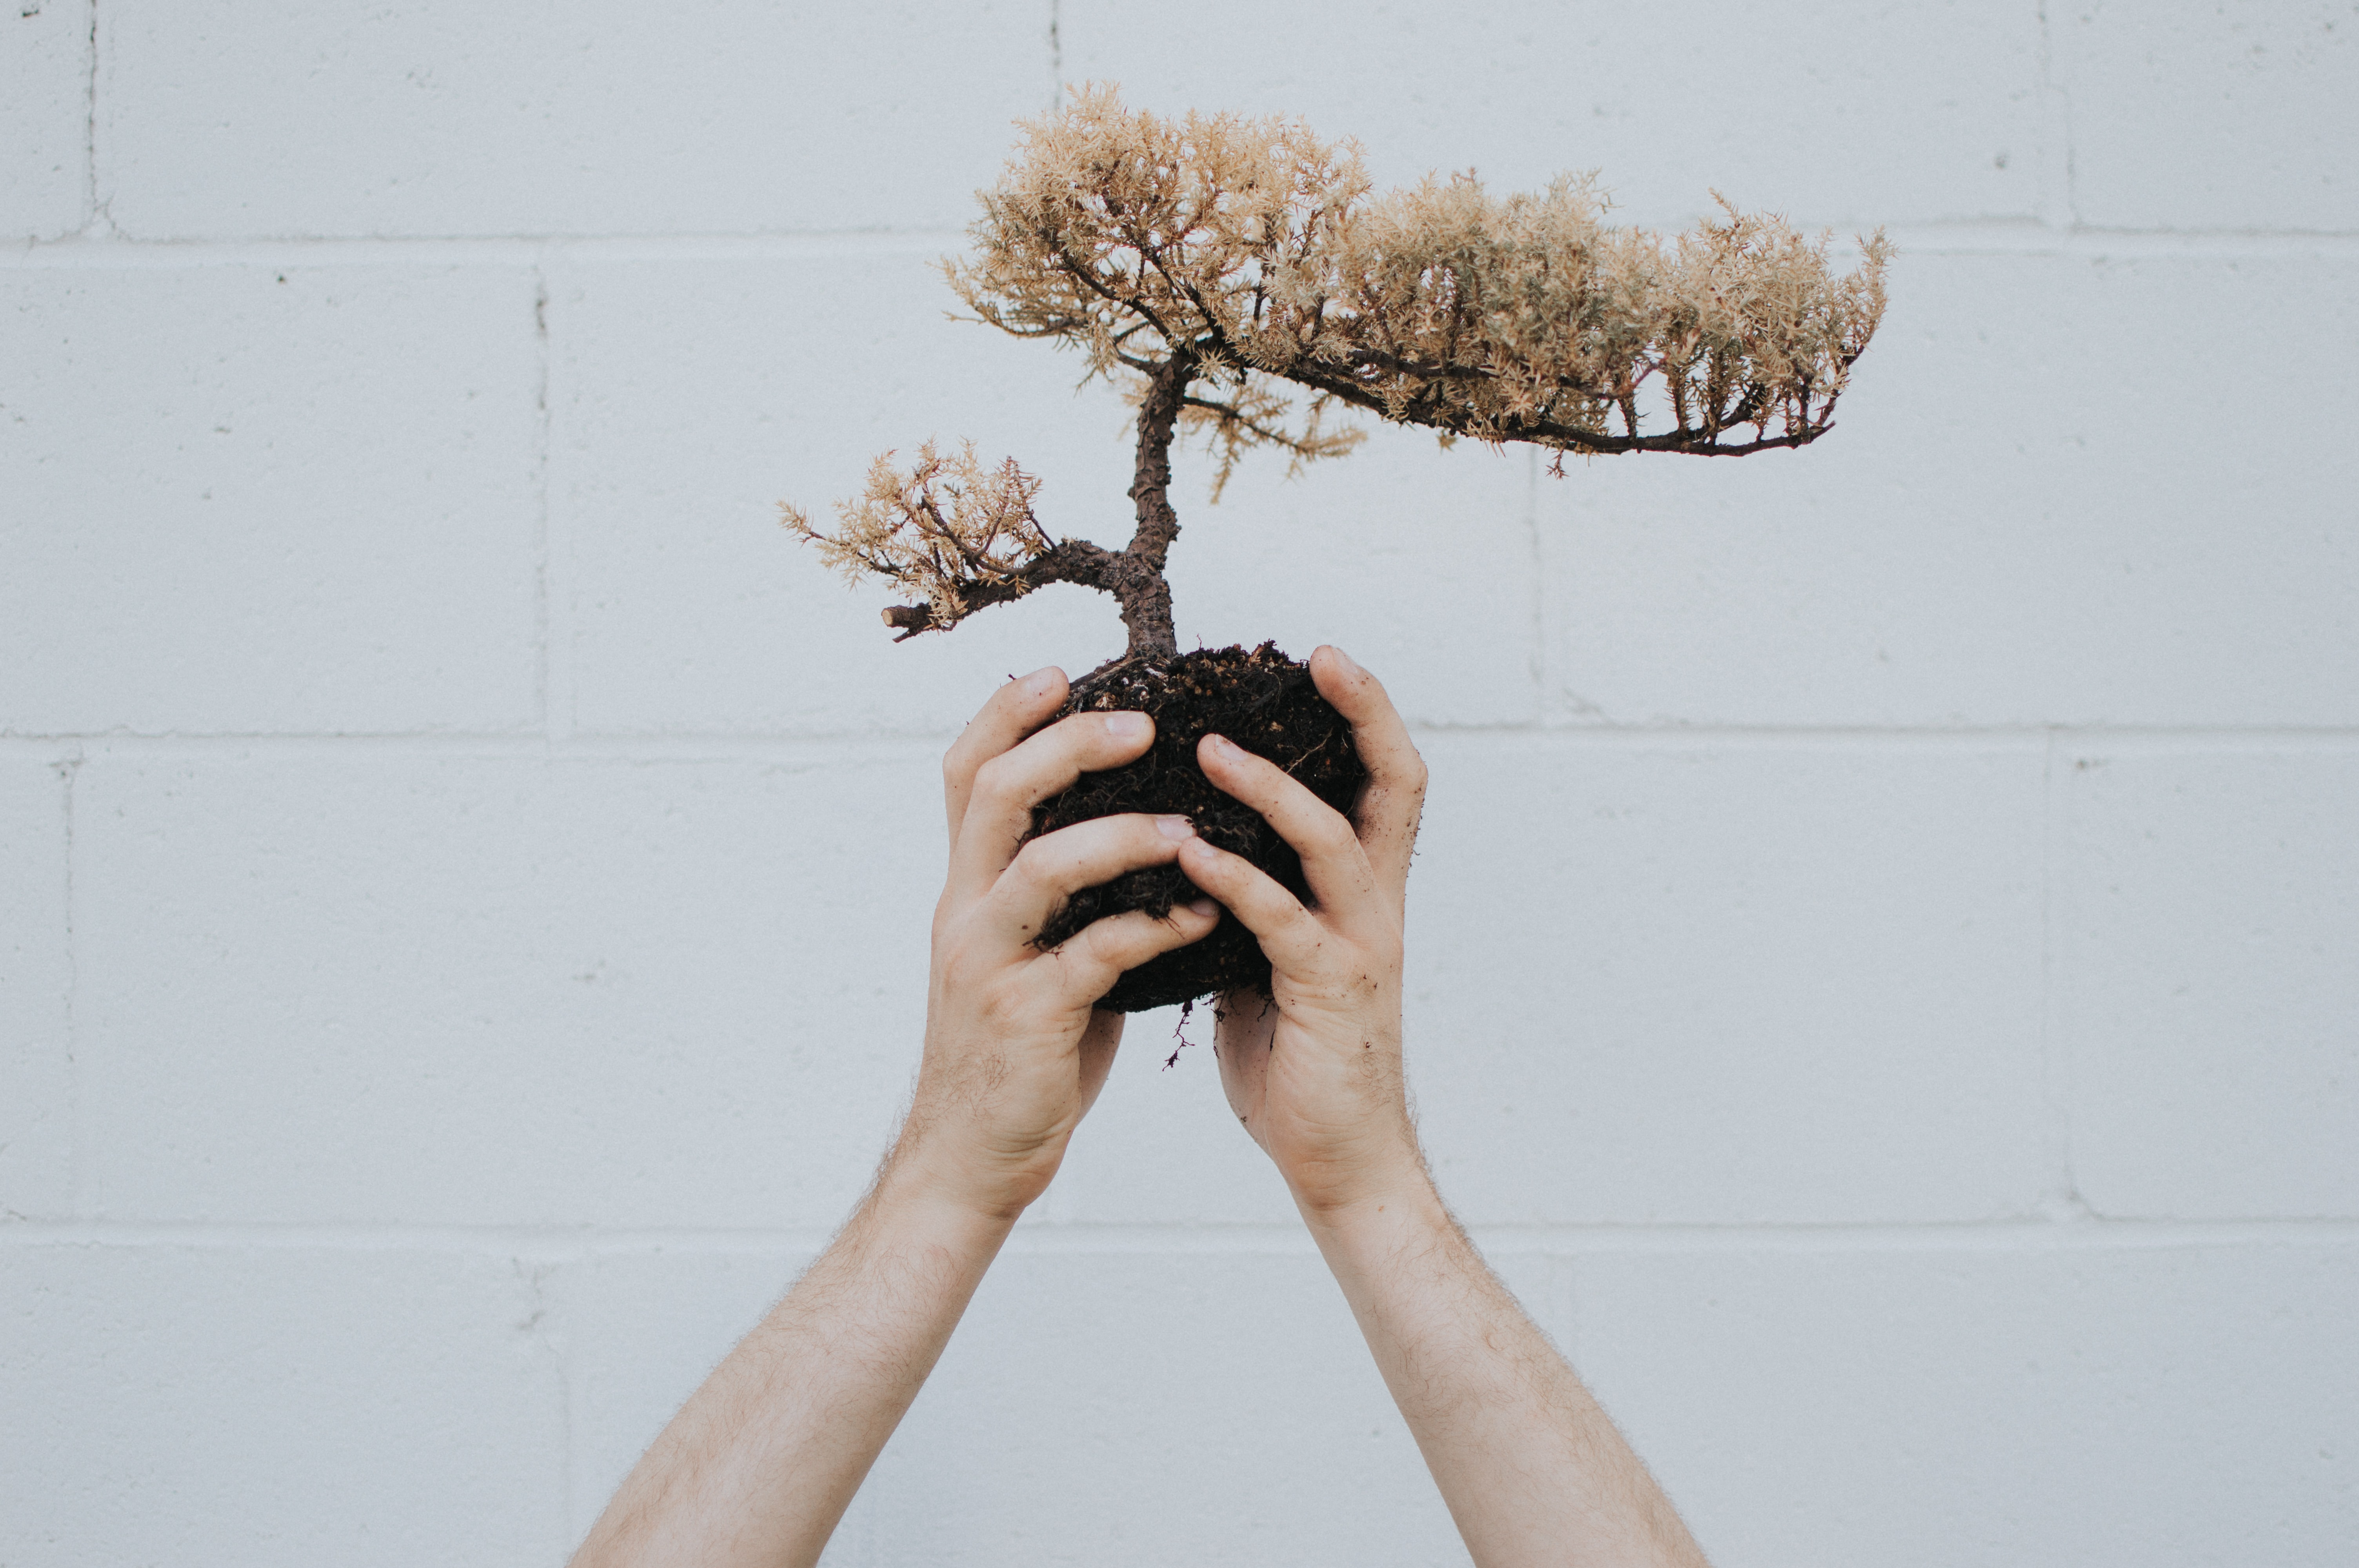 person holding brown leafed plant